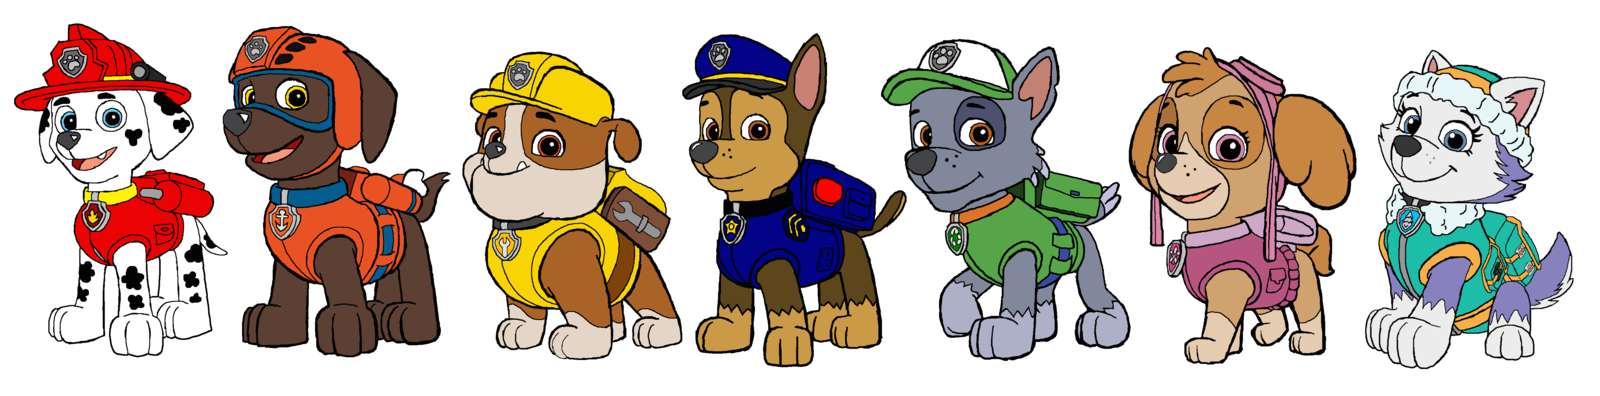 Chase the dog from paw partols clipart png black and white download pawpatrol - DeviantArt png black and white download